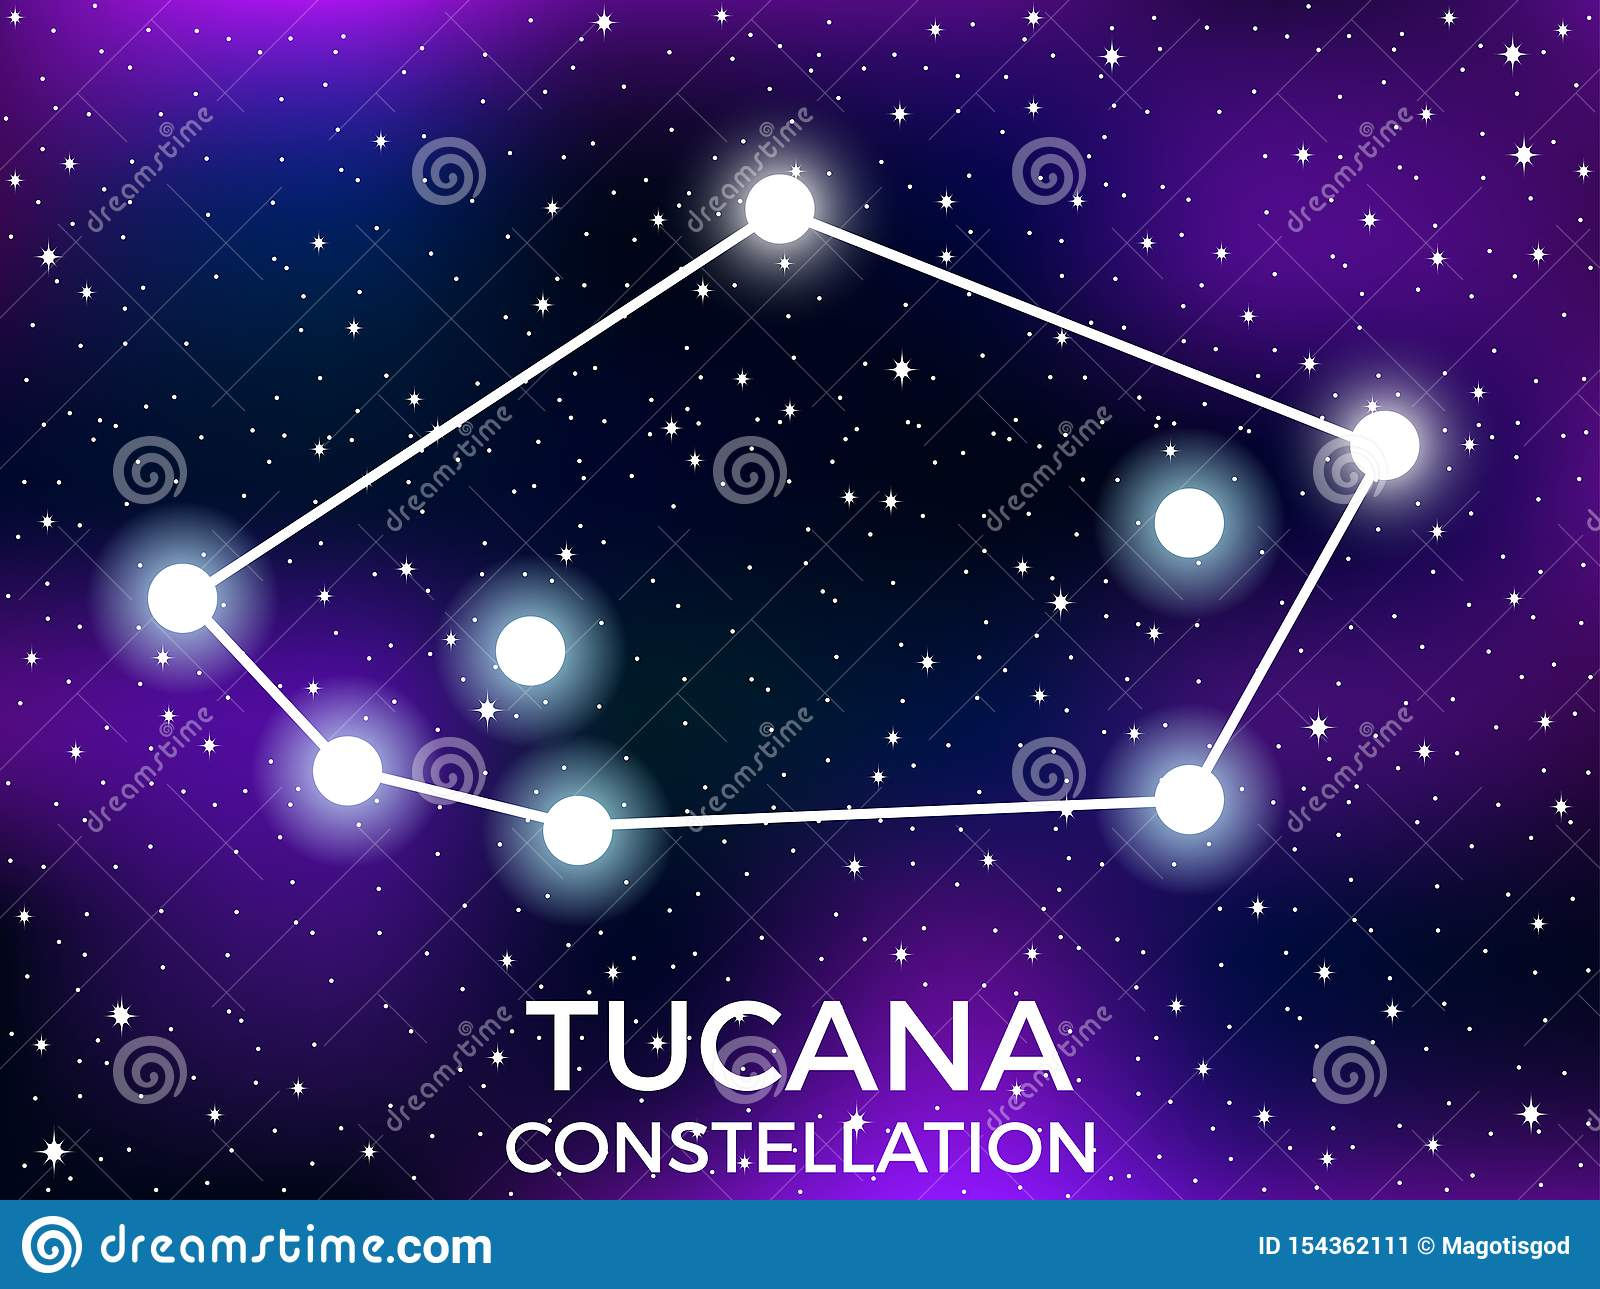 Tucana constellation. Starry night sky. Zodiac sign. Cluster of stars and galaxies. Deep space. Vector